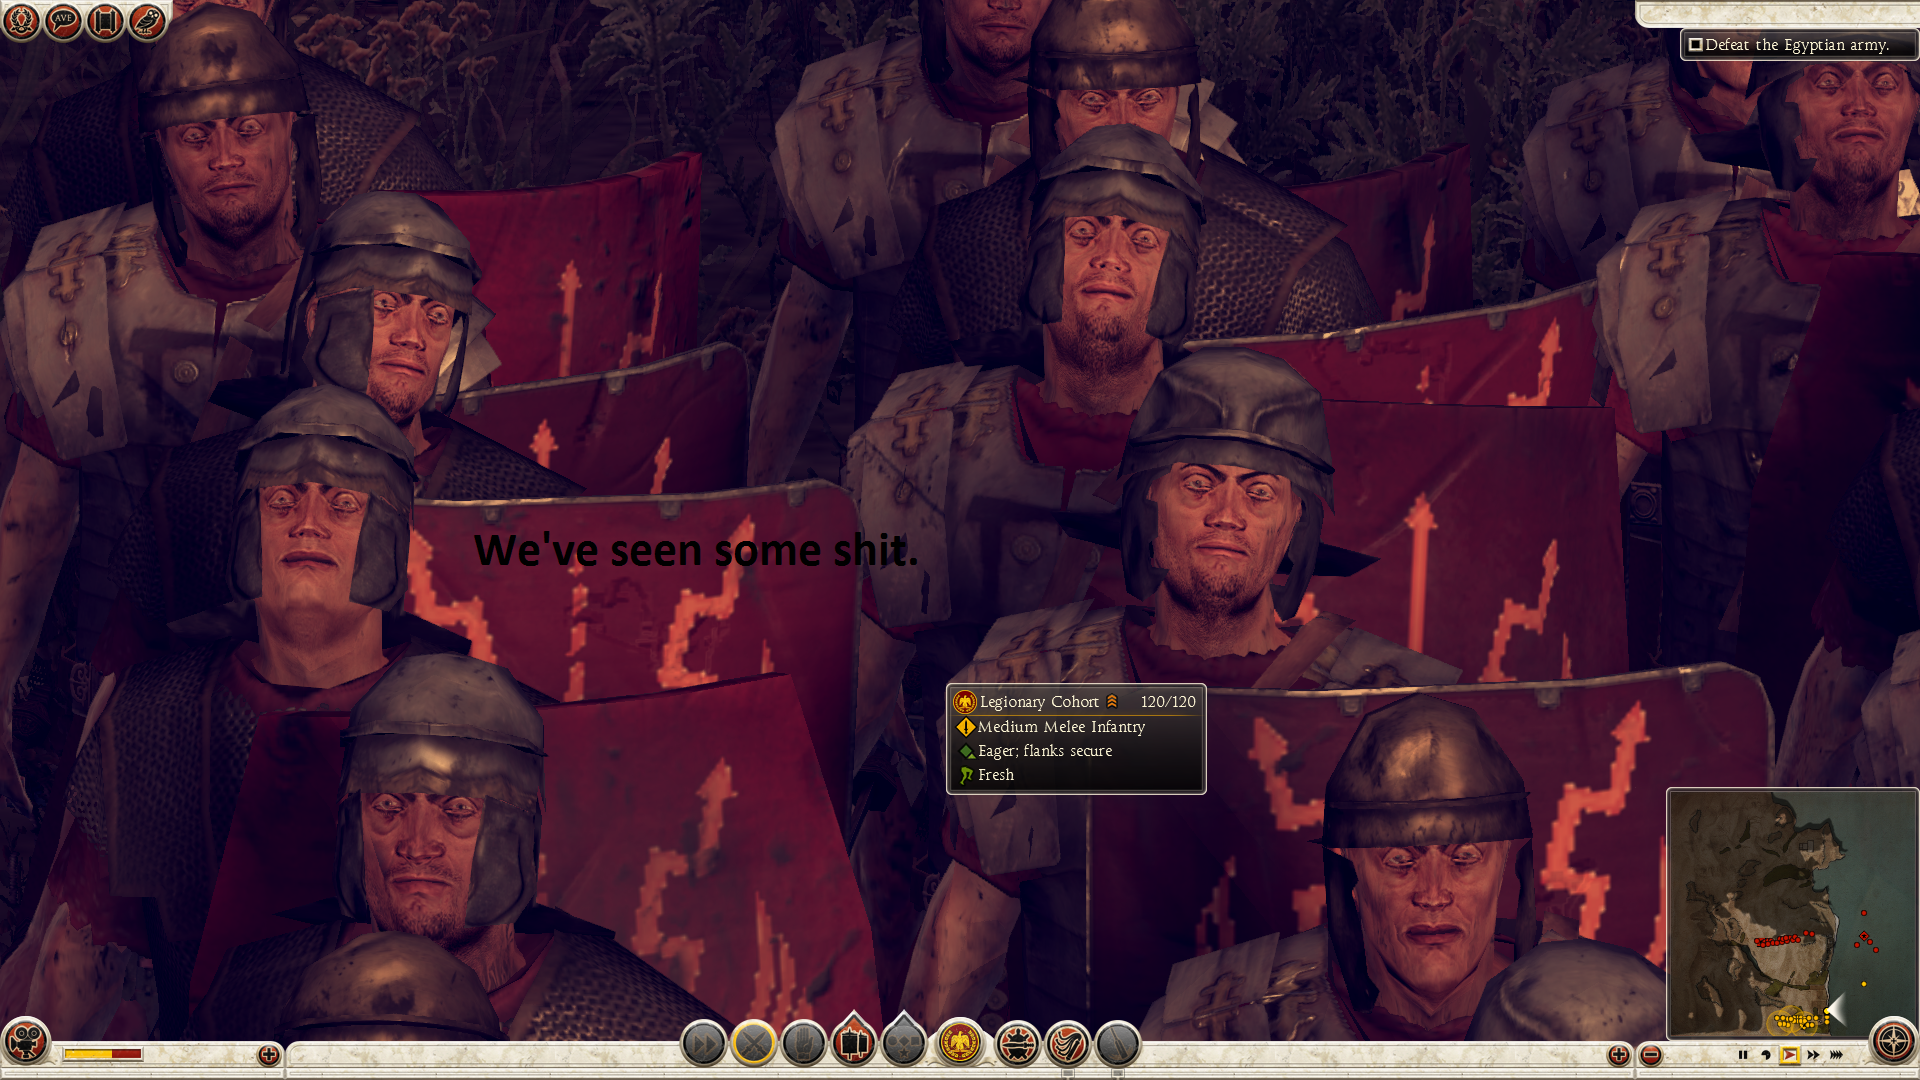 Bippidy Poppidy. Shamelessly stole from Reddit and added text, the game is total war : Rome 2. This picture entails a bunch of soldiers witnessing hitting fans.